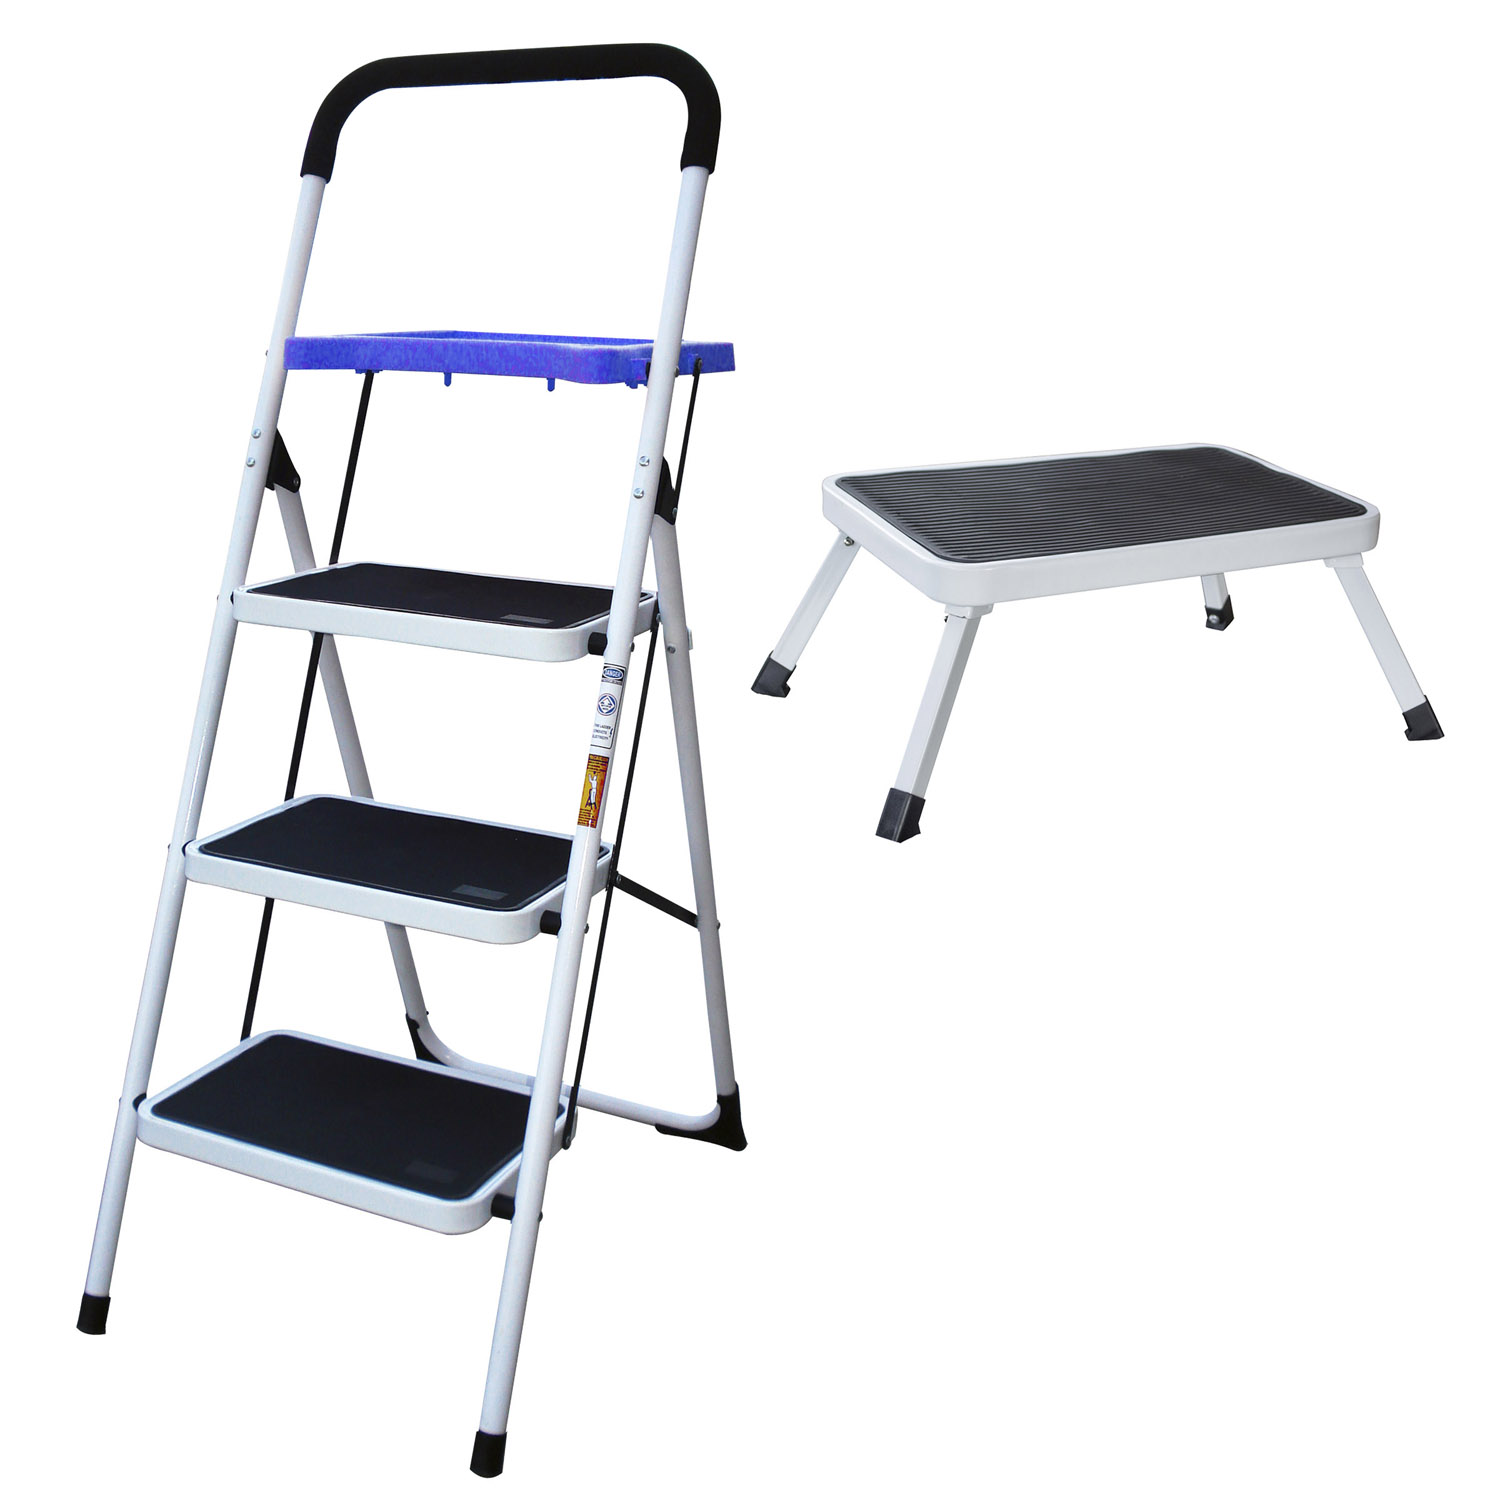 3-Step Utility Stool With 1-Step Folding Platform Stool Set